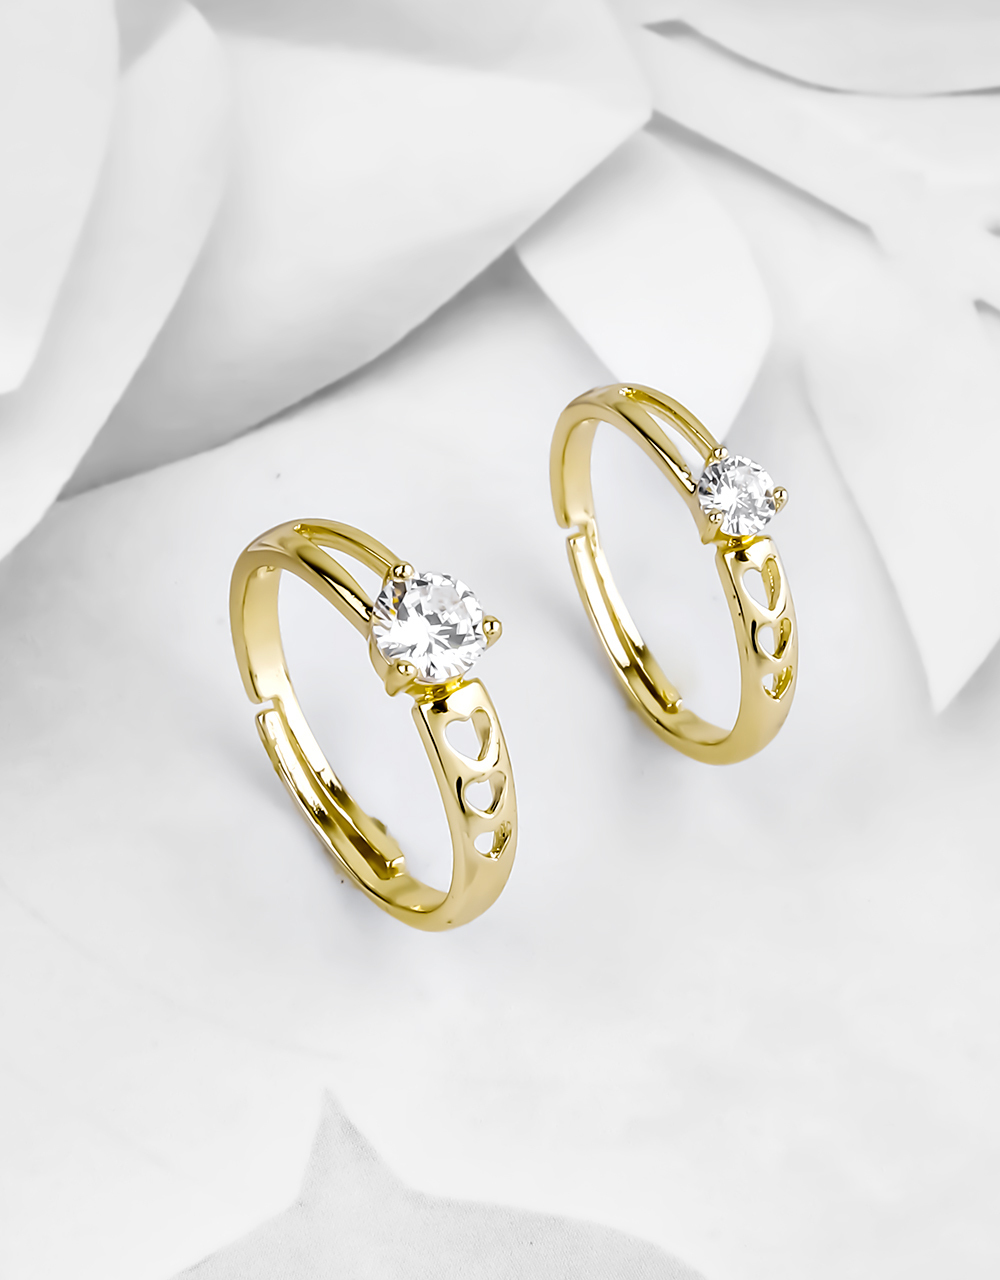 Gold Plating American Diamond Solitaire Couple Rings